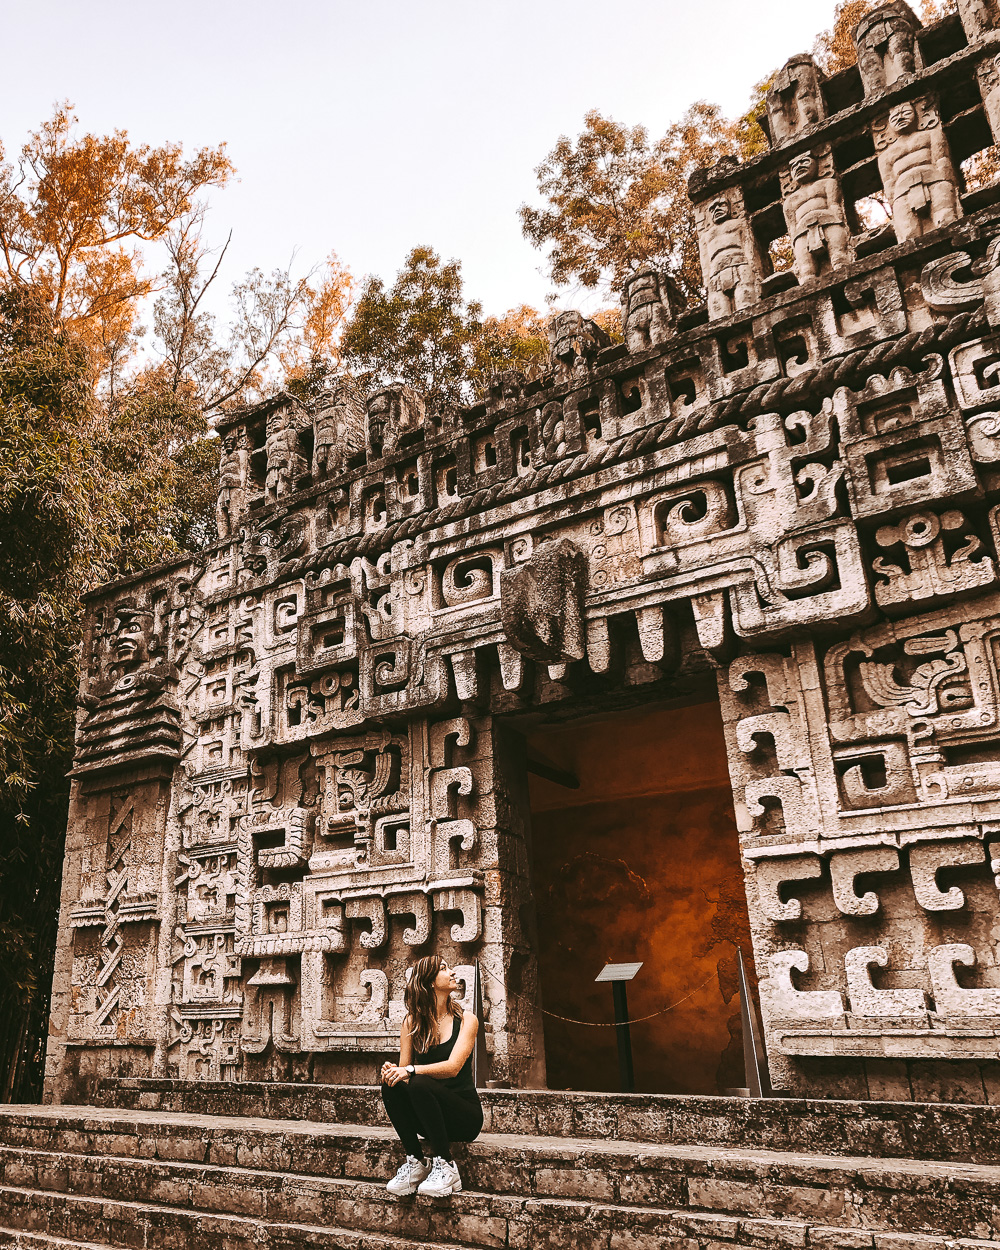 Mexico city aztec ruins